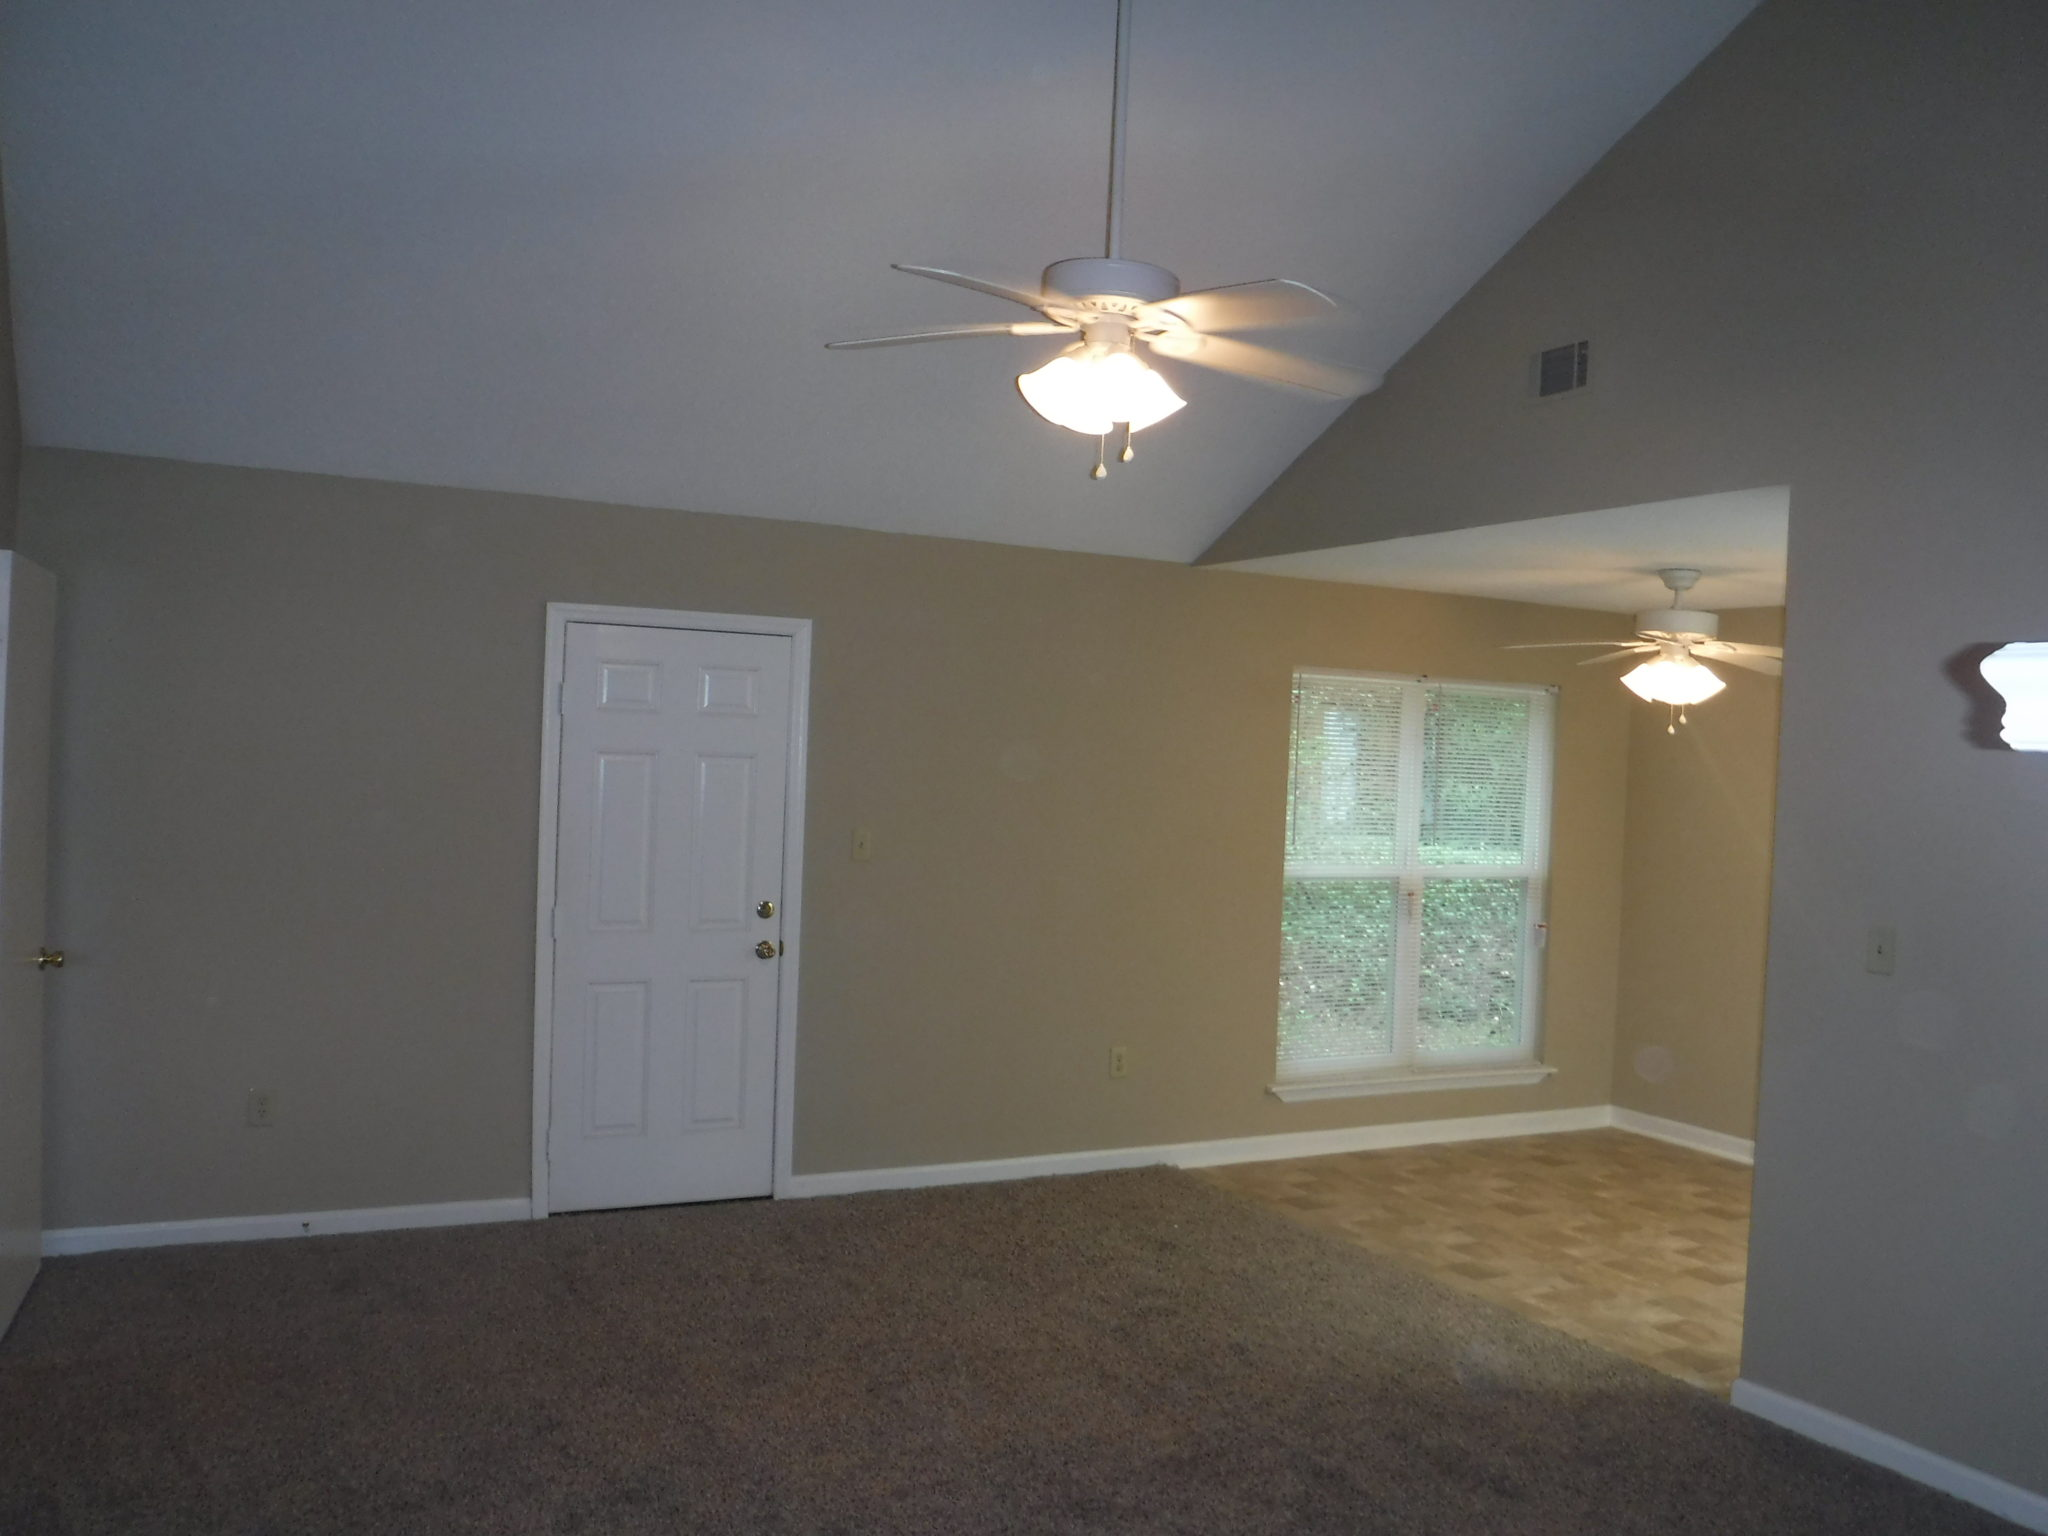 14 x 20 living room with high ceilings and new ceiling fan